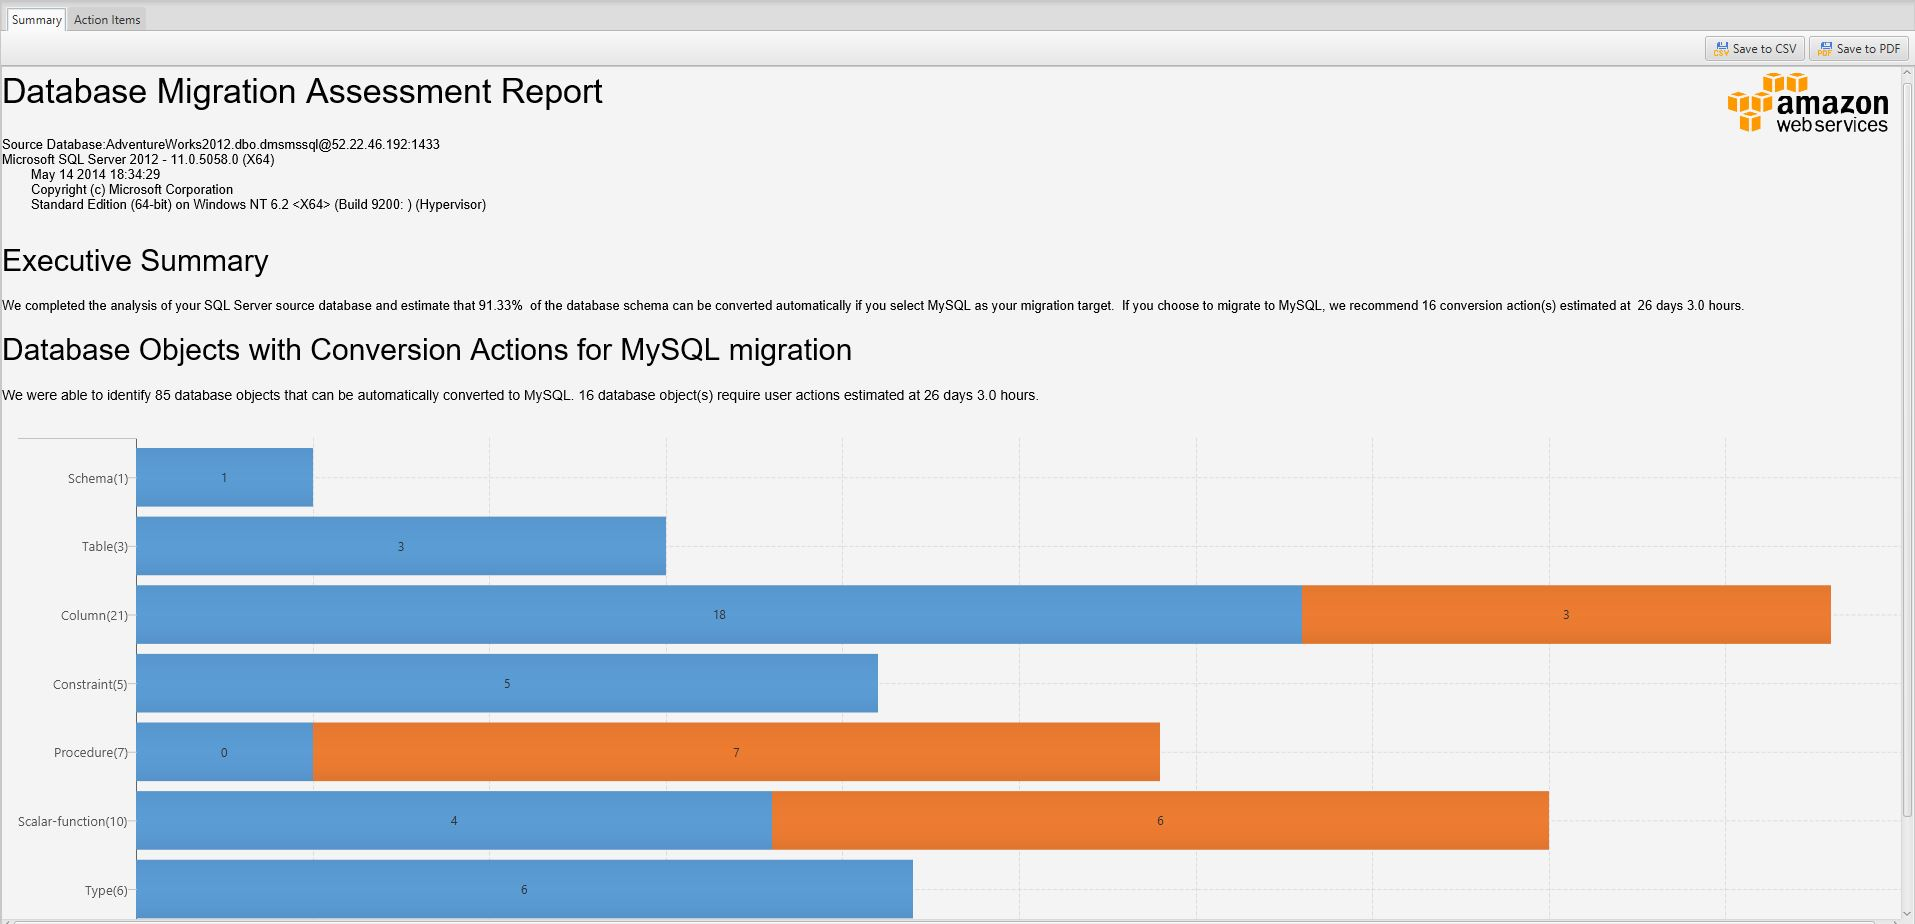 Database Migration Assessment Report Summary View